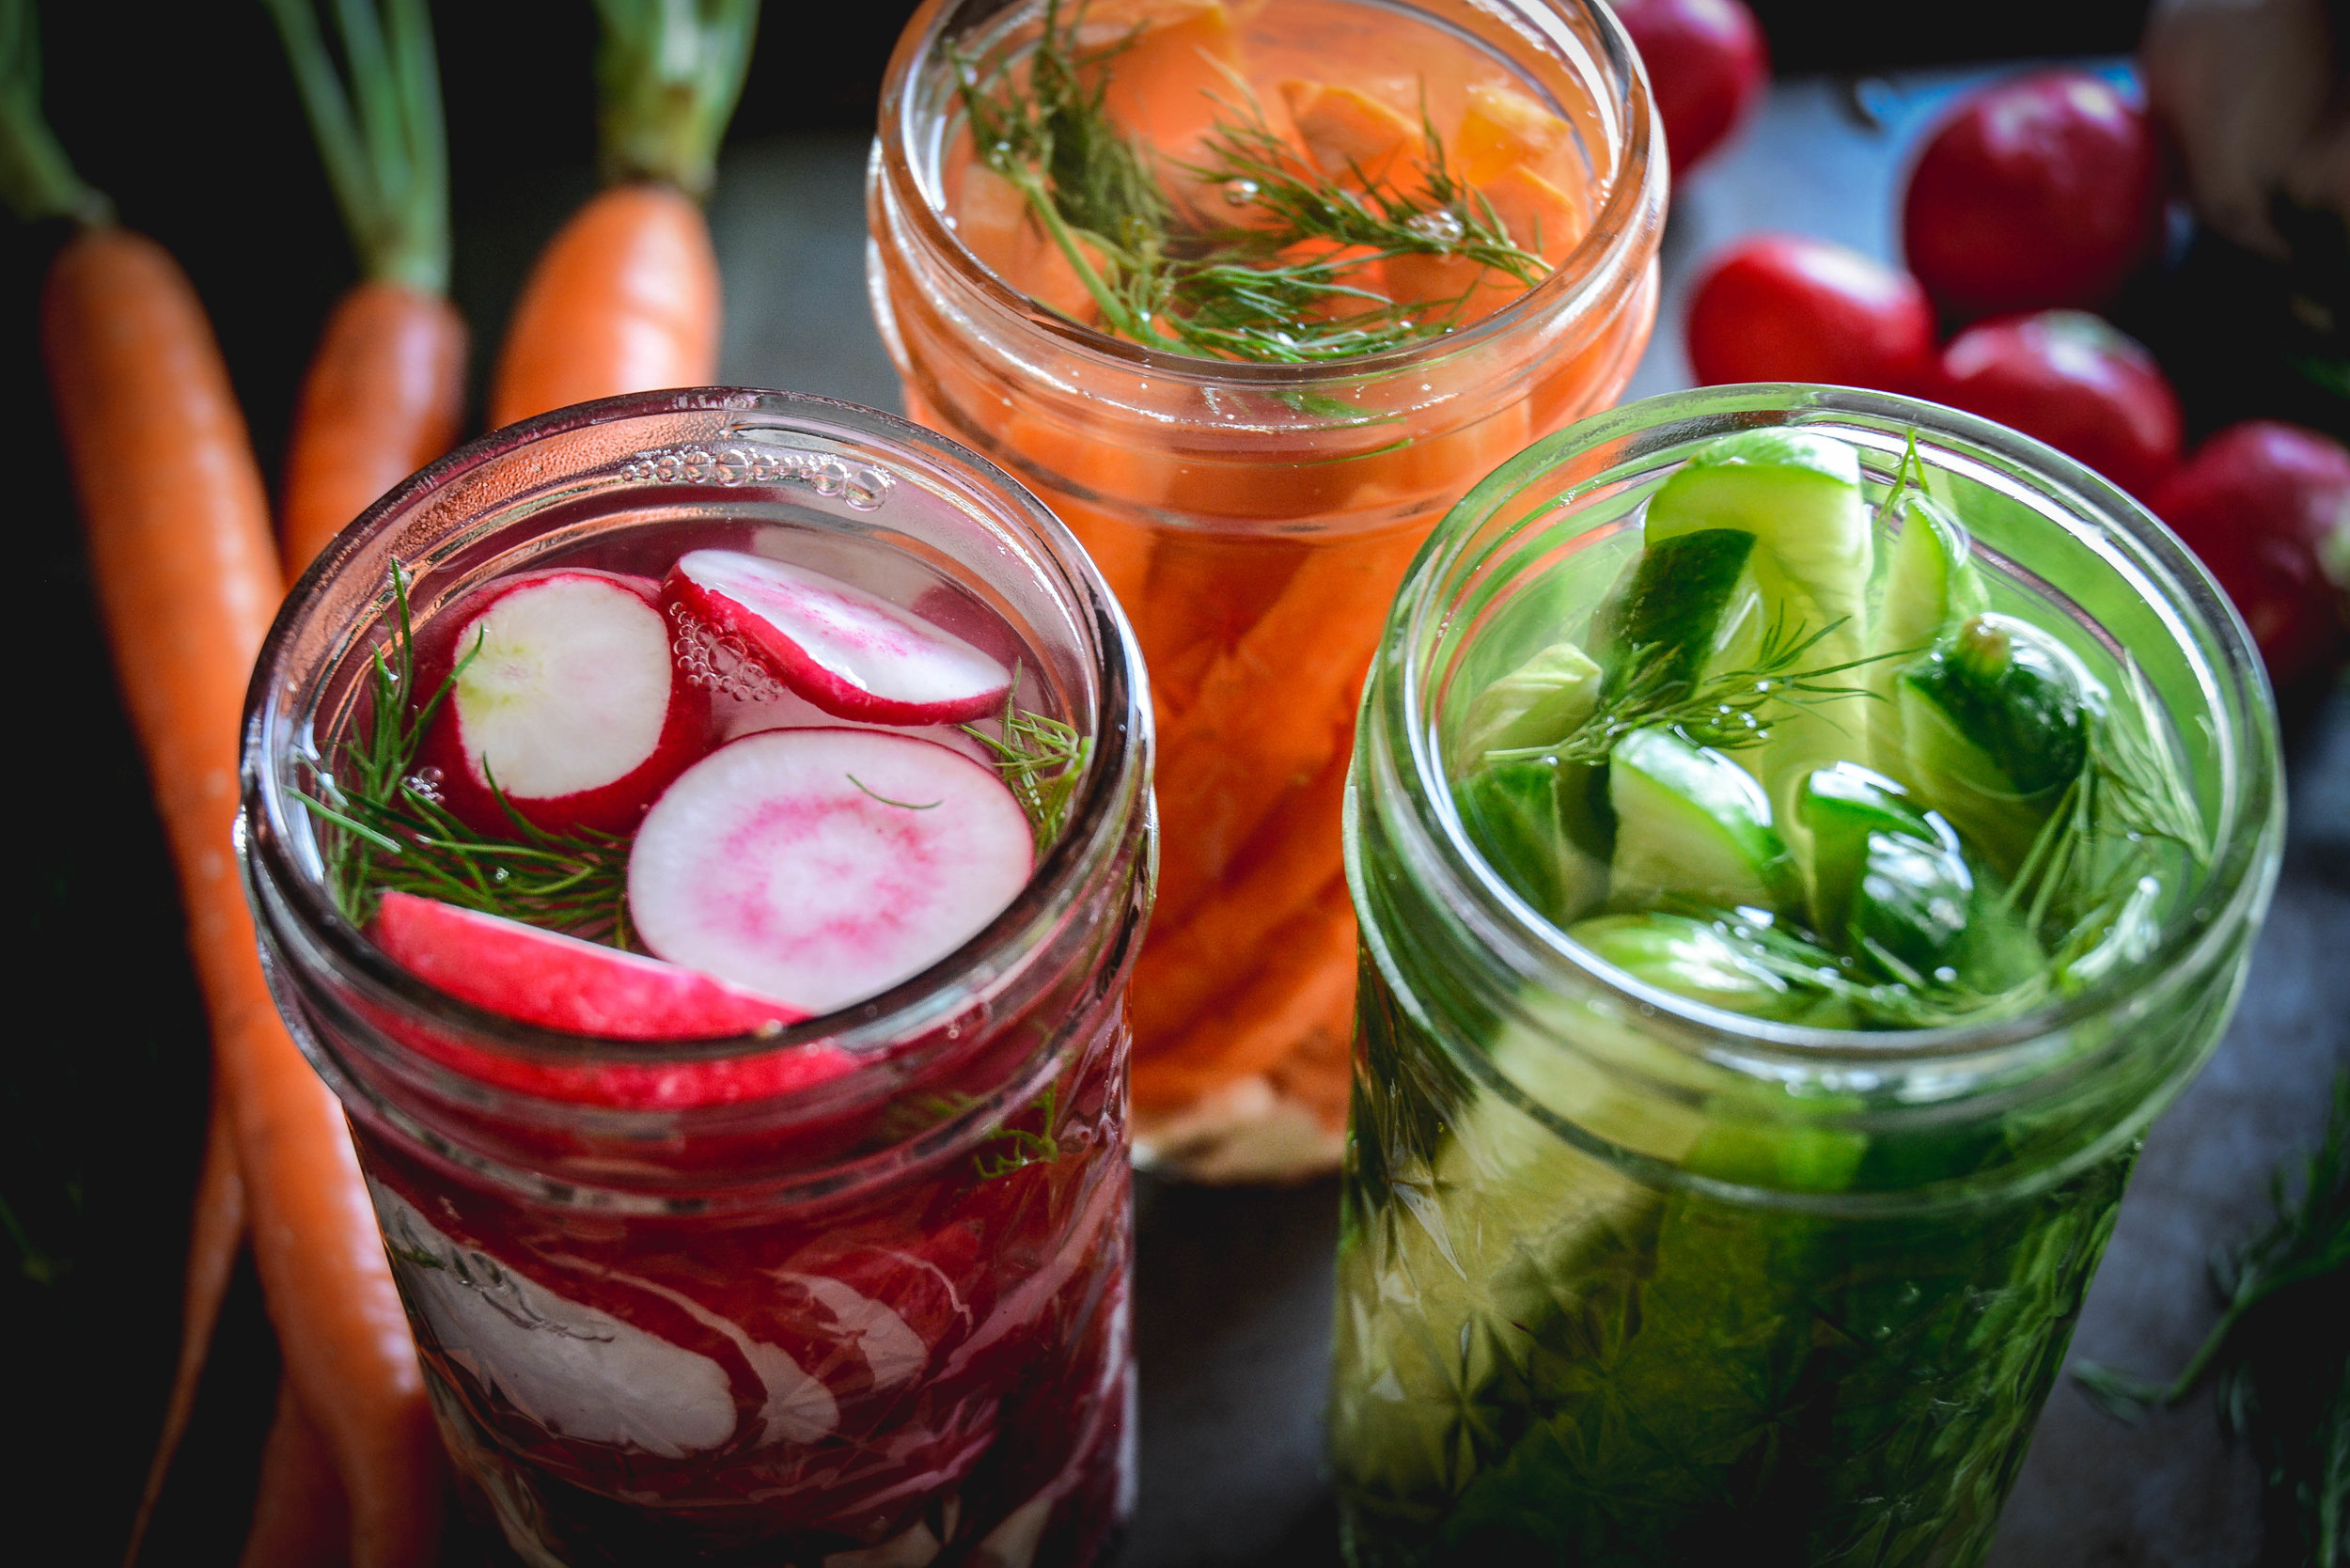 sideways view of cucumbers, sliced radishes and carrot sticks in jars